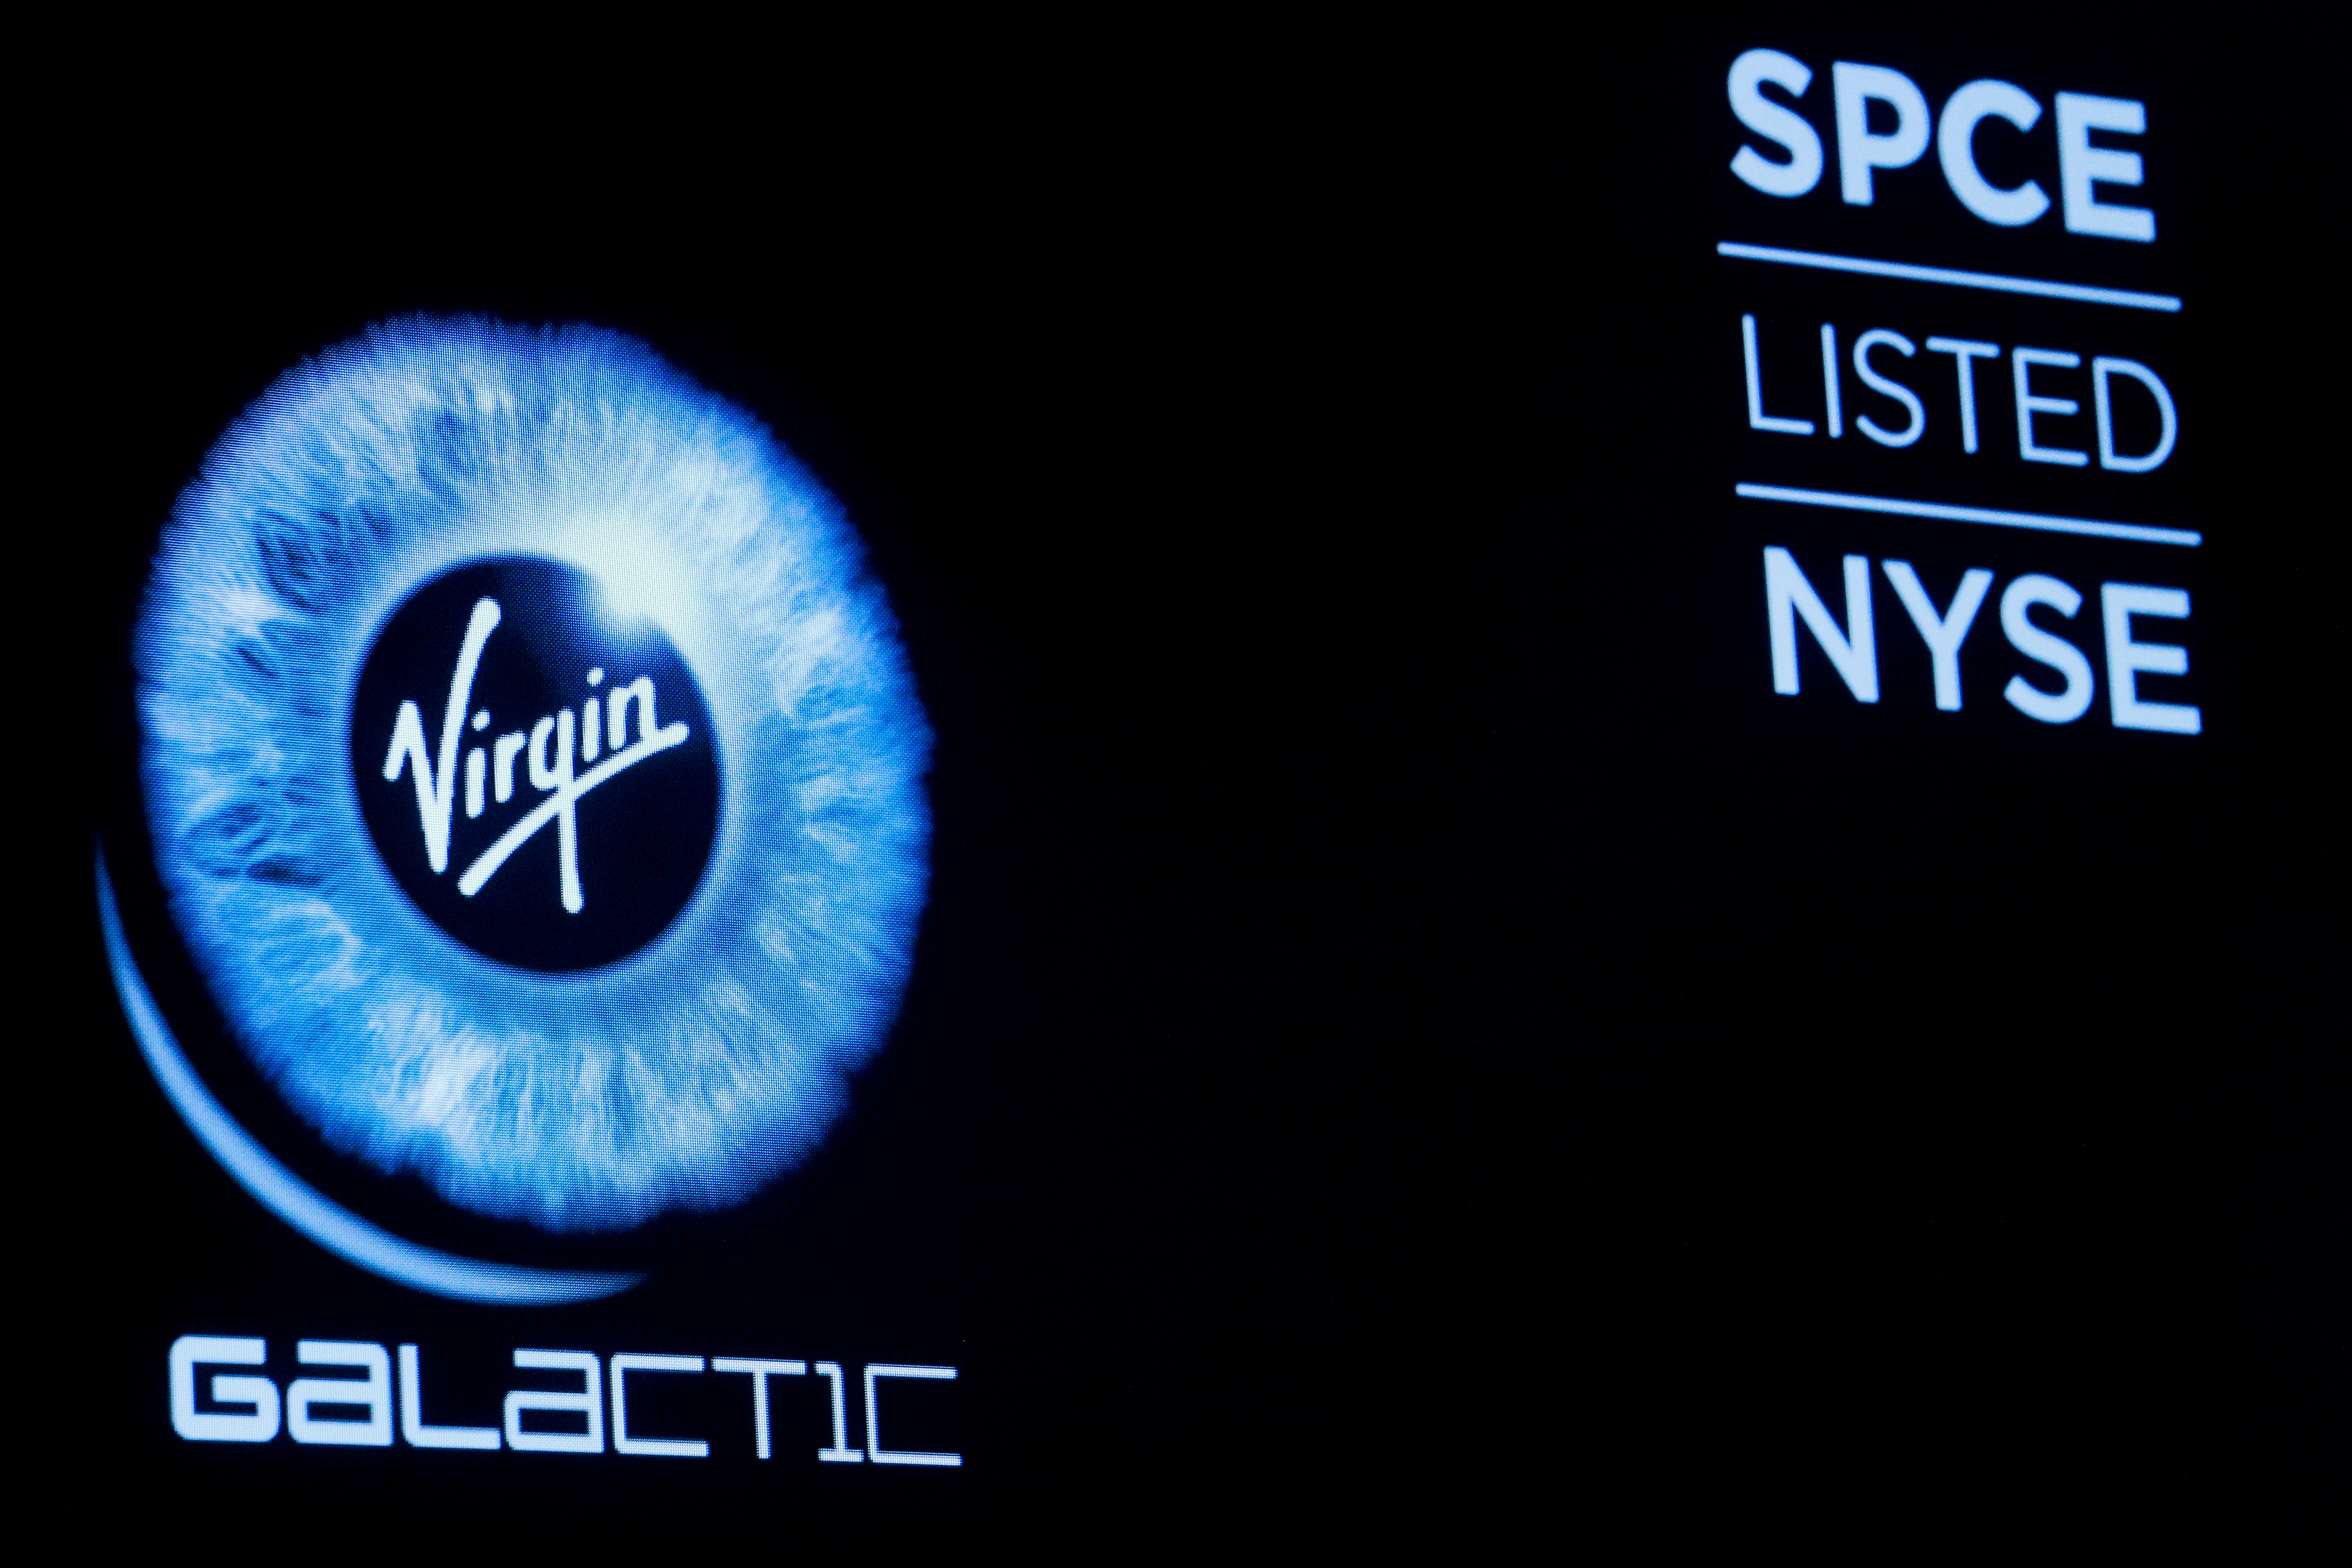 Virgin Galactic (SPCE) logo is displayed on a screen on the floor of the New York Stock Exchange (NYSE) as the company begins public trading in New York, U.S., October 28, 2019. REUTERS/Brendan McDermid